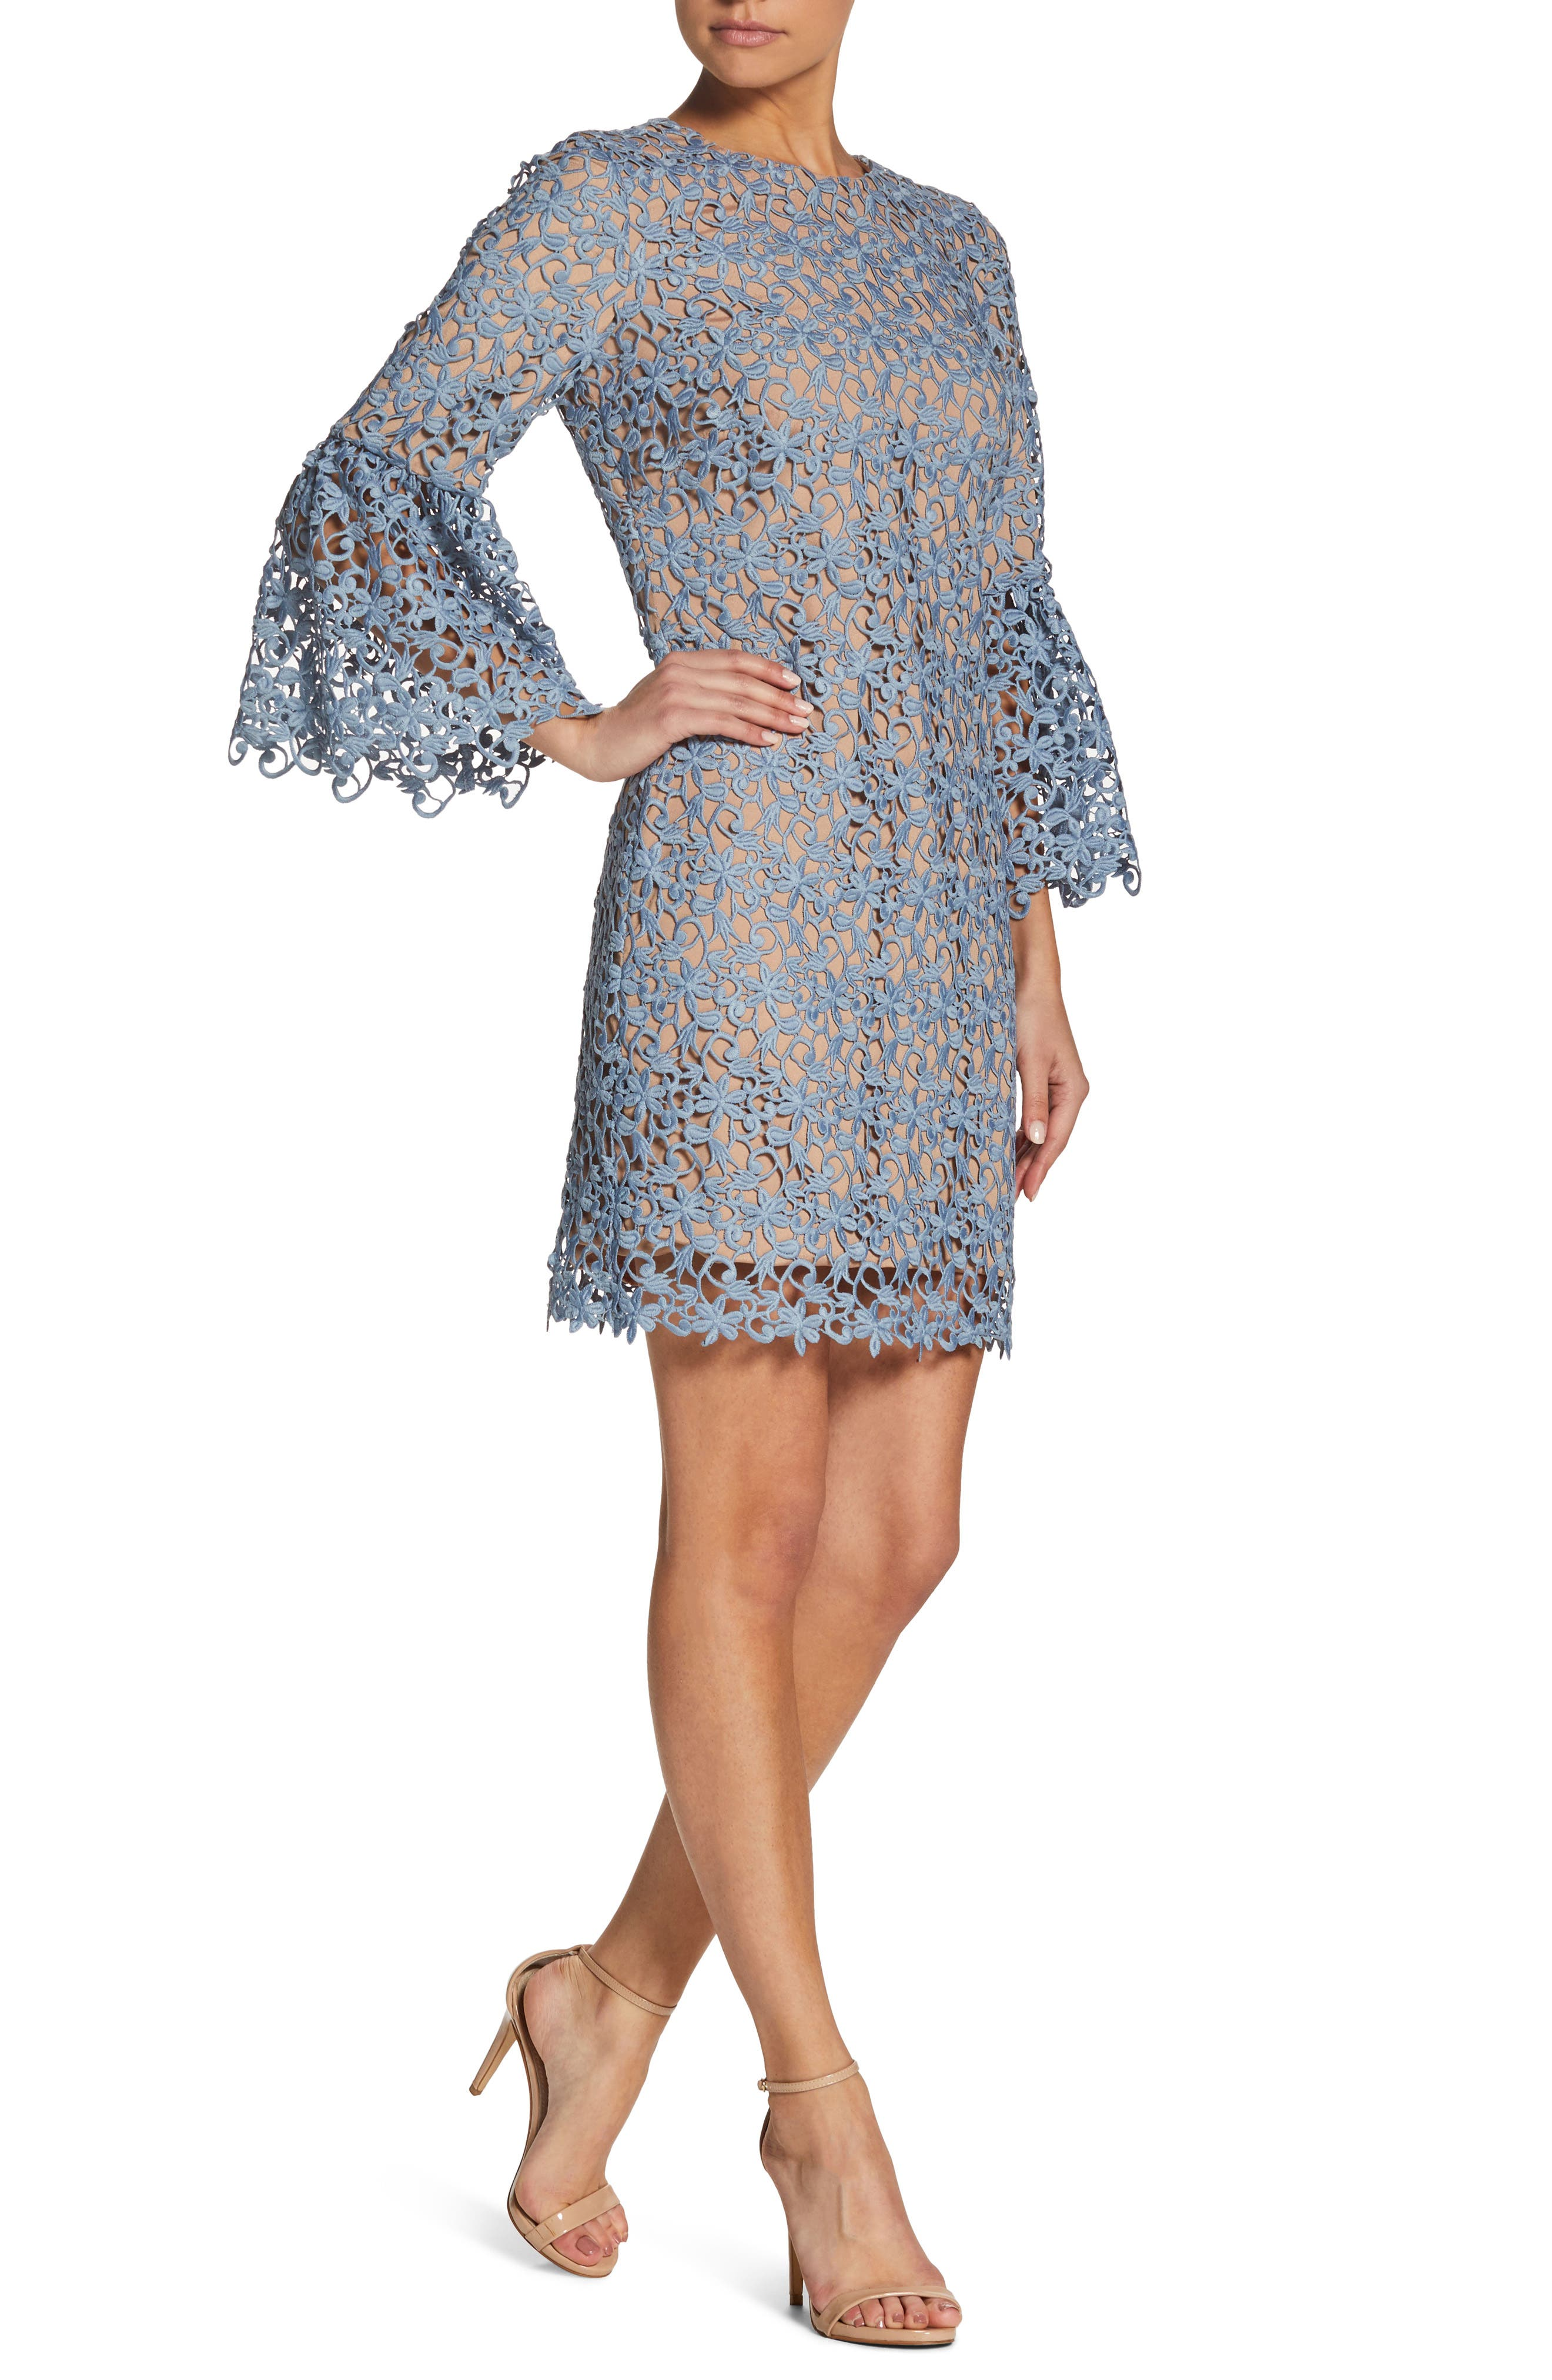 Paige Crochet Shift Dress,                             Alternate thumbnail 4, color,                             Mineral Blue/ Nude